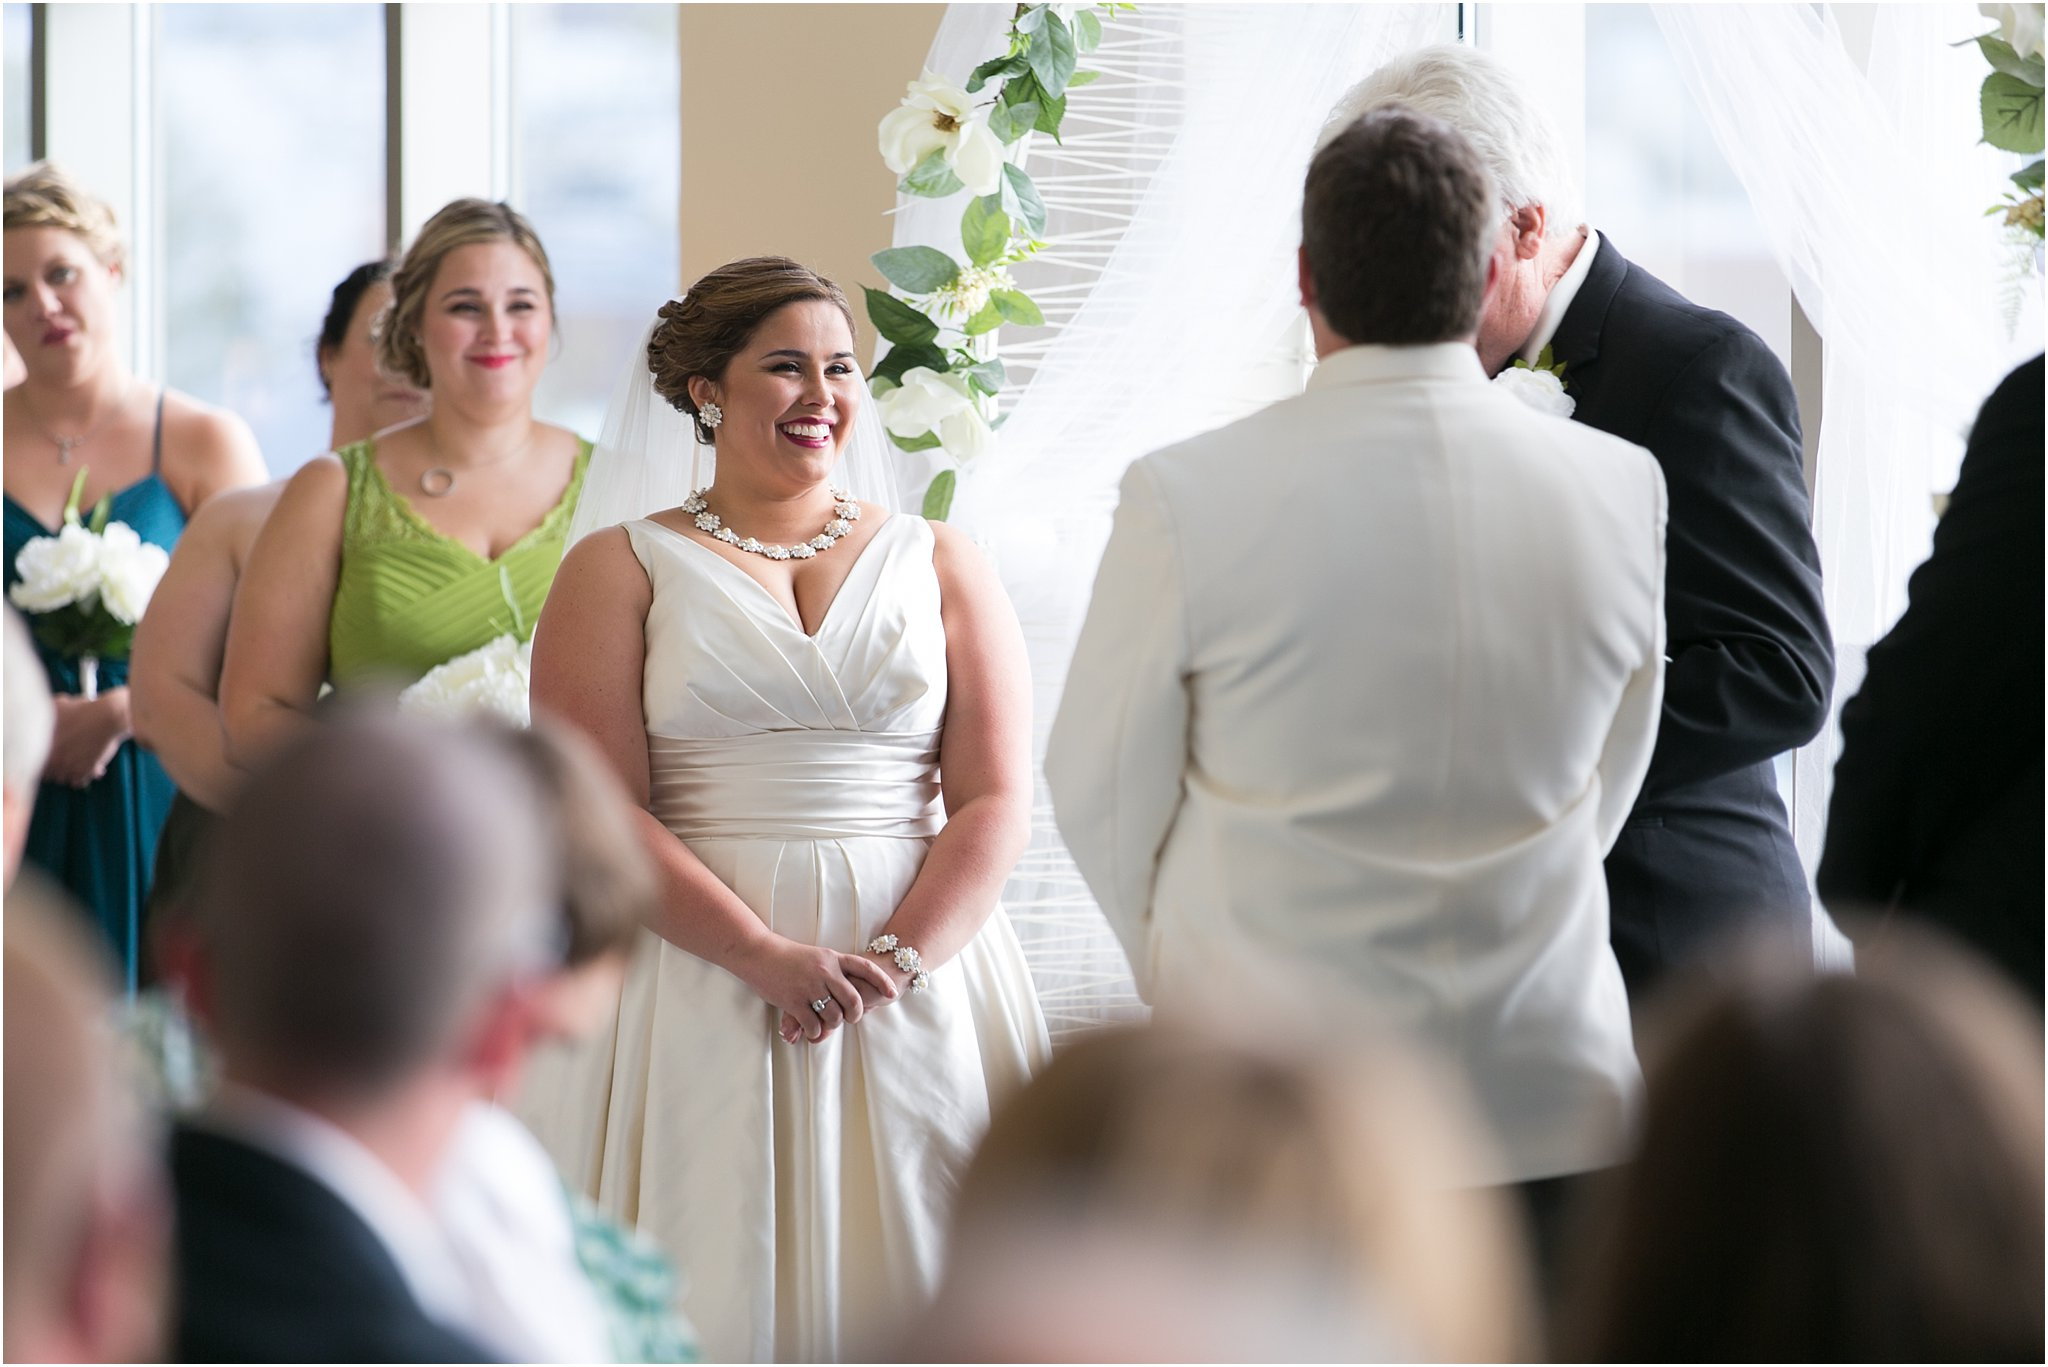 va_jessica_ryan_photography_virginia_wedding_norfolk_harrison_opera_house_norfolk_arts_district_portraits_3783